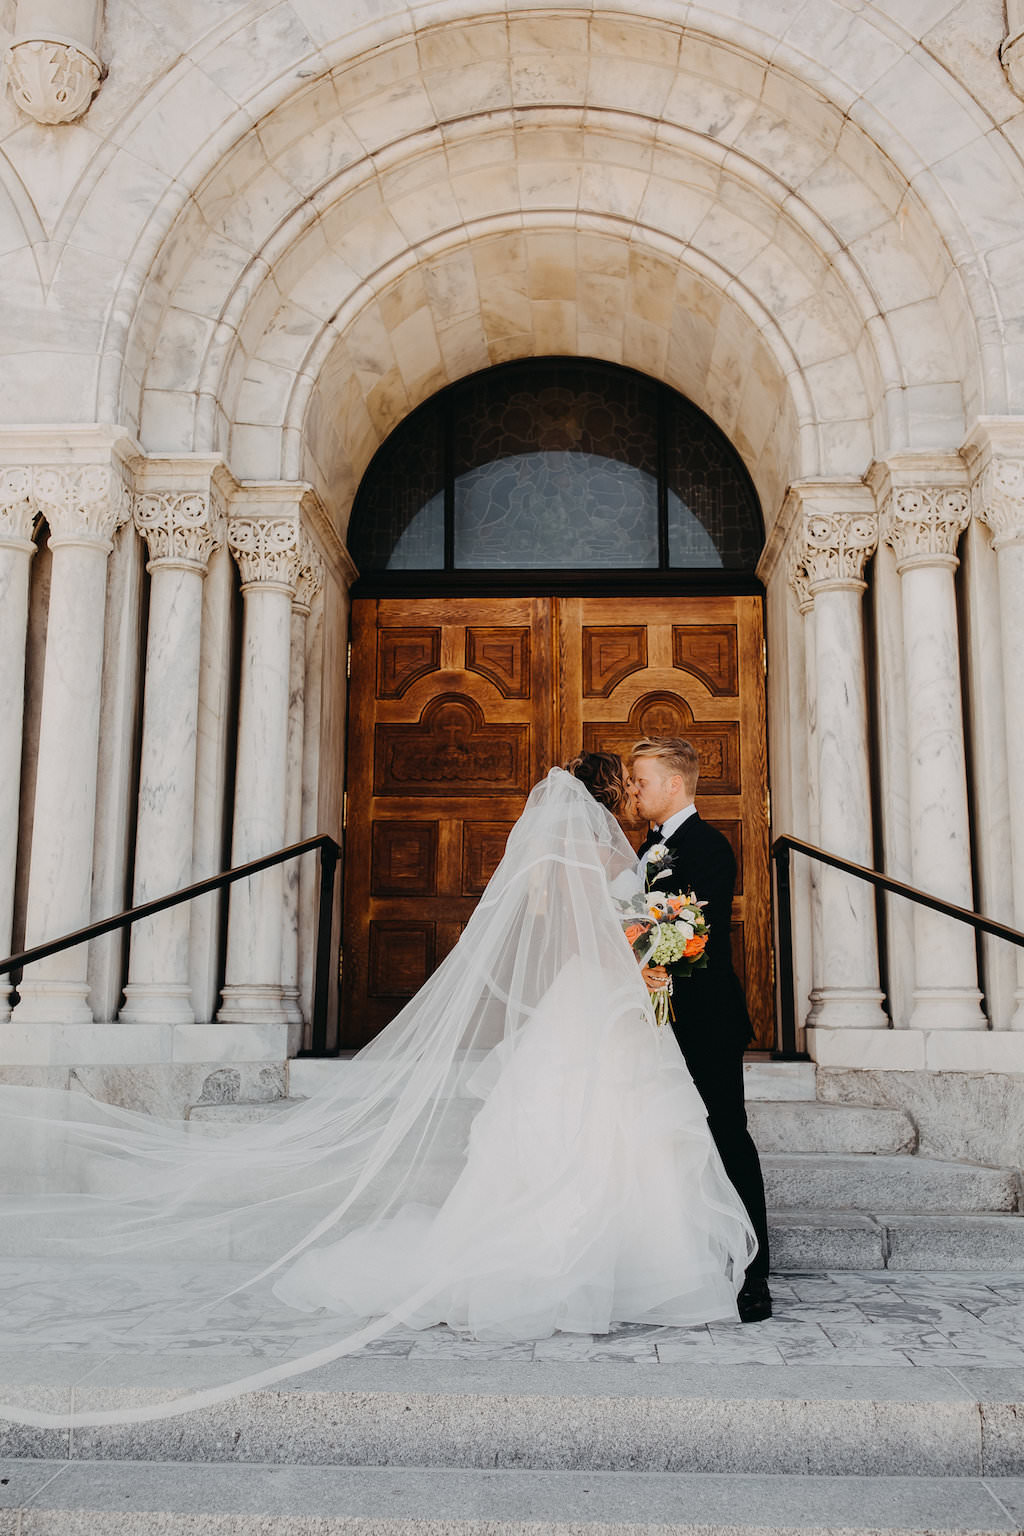 Outdoor Church Steps Wedding Ceremony Exit Portrait with Tropical Bouquet   Downtown Tampa Wedding Photographer Rad Red Creative   Traditional Church Wedding Ceremony Portrait with Orange and Greenery Tropical Bouquet, Stella York Wedding Dress with Layered Skirt   Downtown Tampa Wedding Photographer Rad Red Creative   Sacred Heart Catholic Church